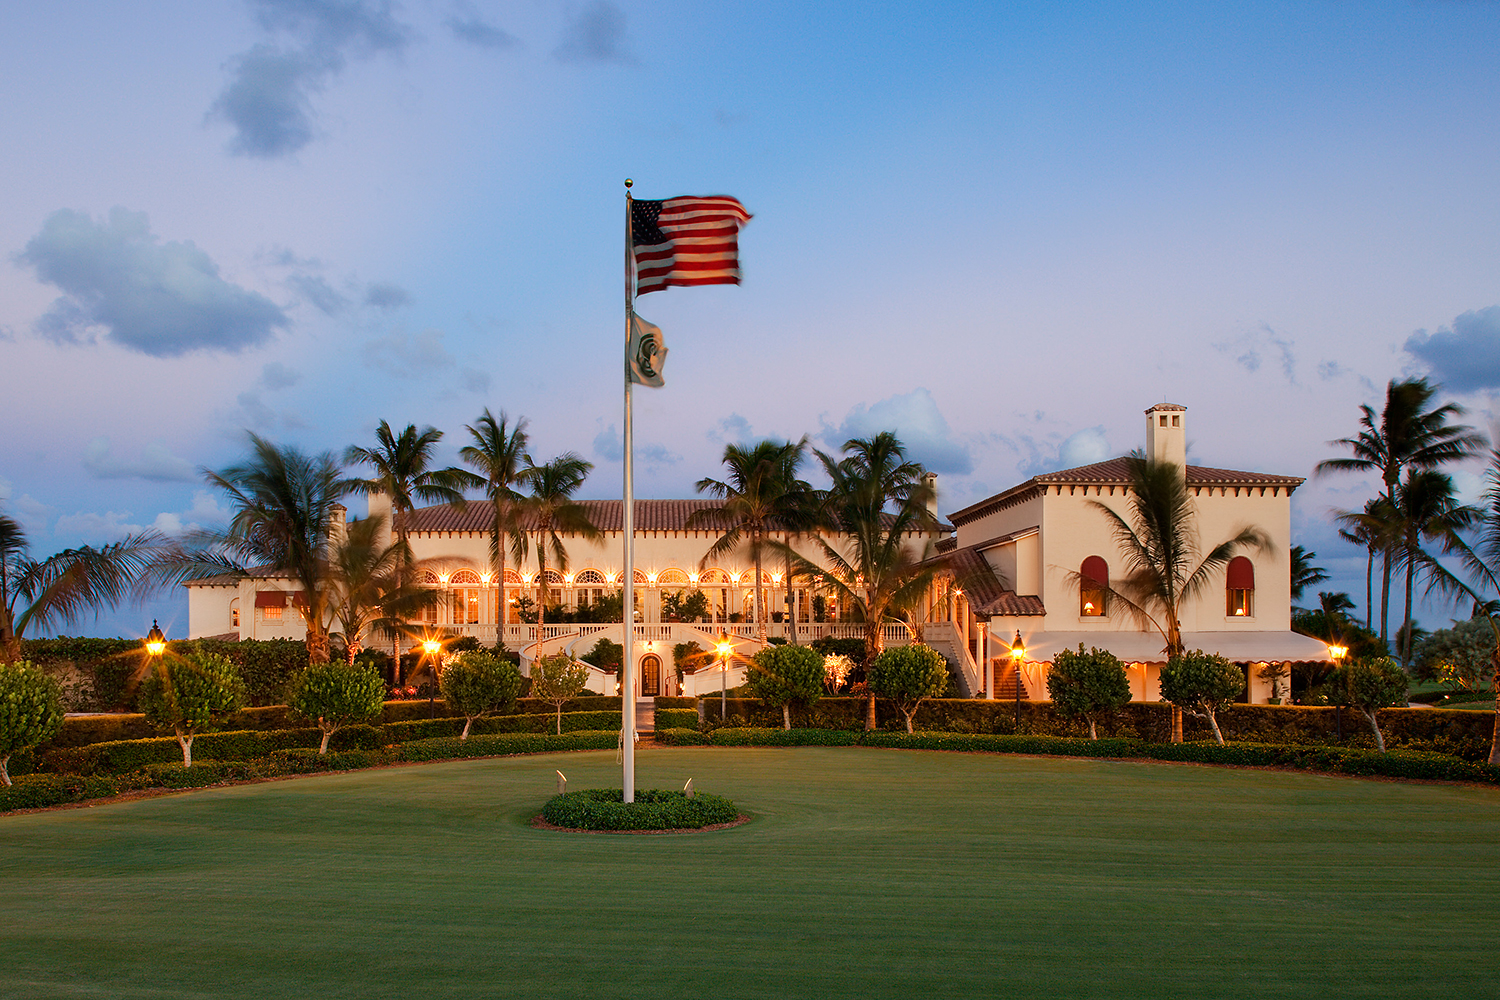 Overview of golf course named Gulf Stream Golf Club